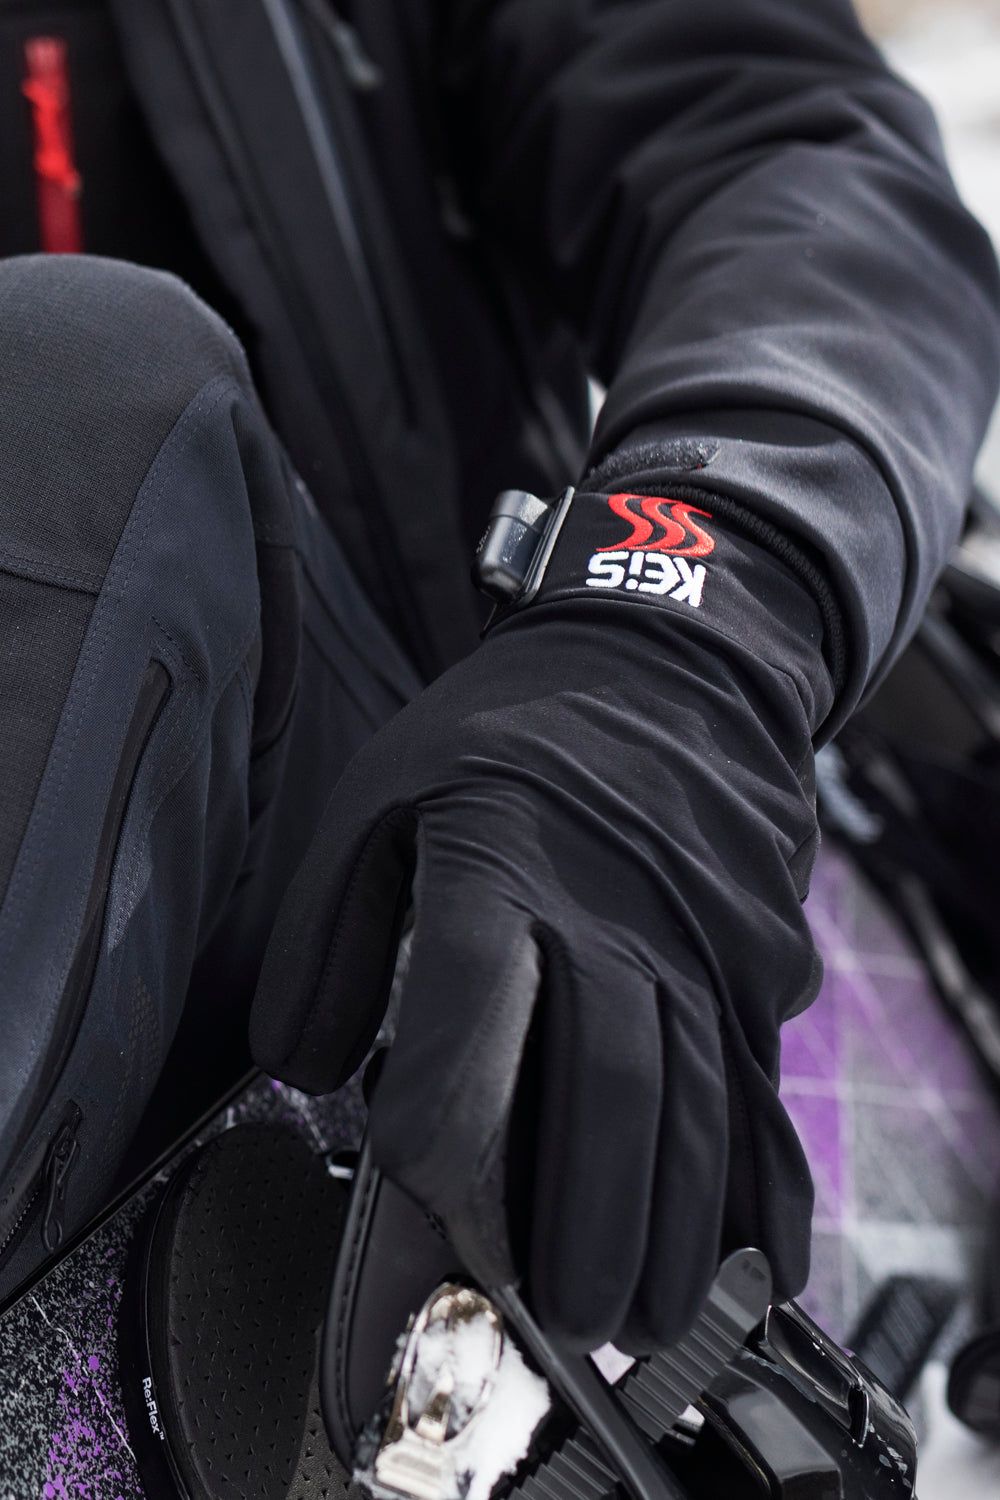 Wear Keis Heated Inner Gloves for many outdoor activities